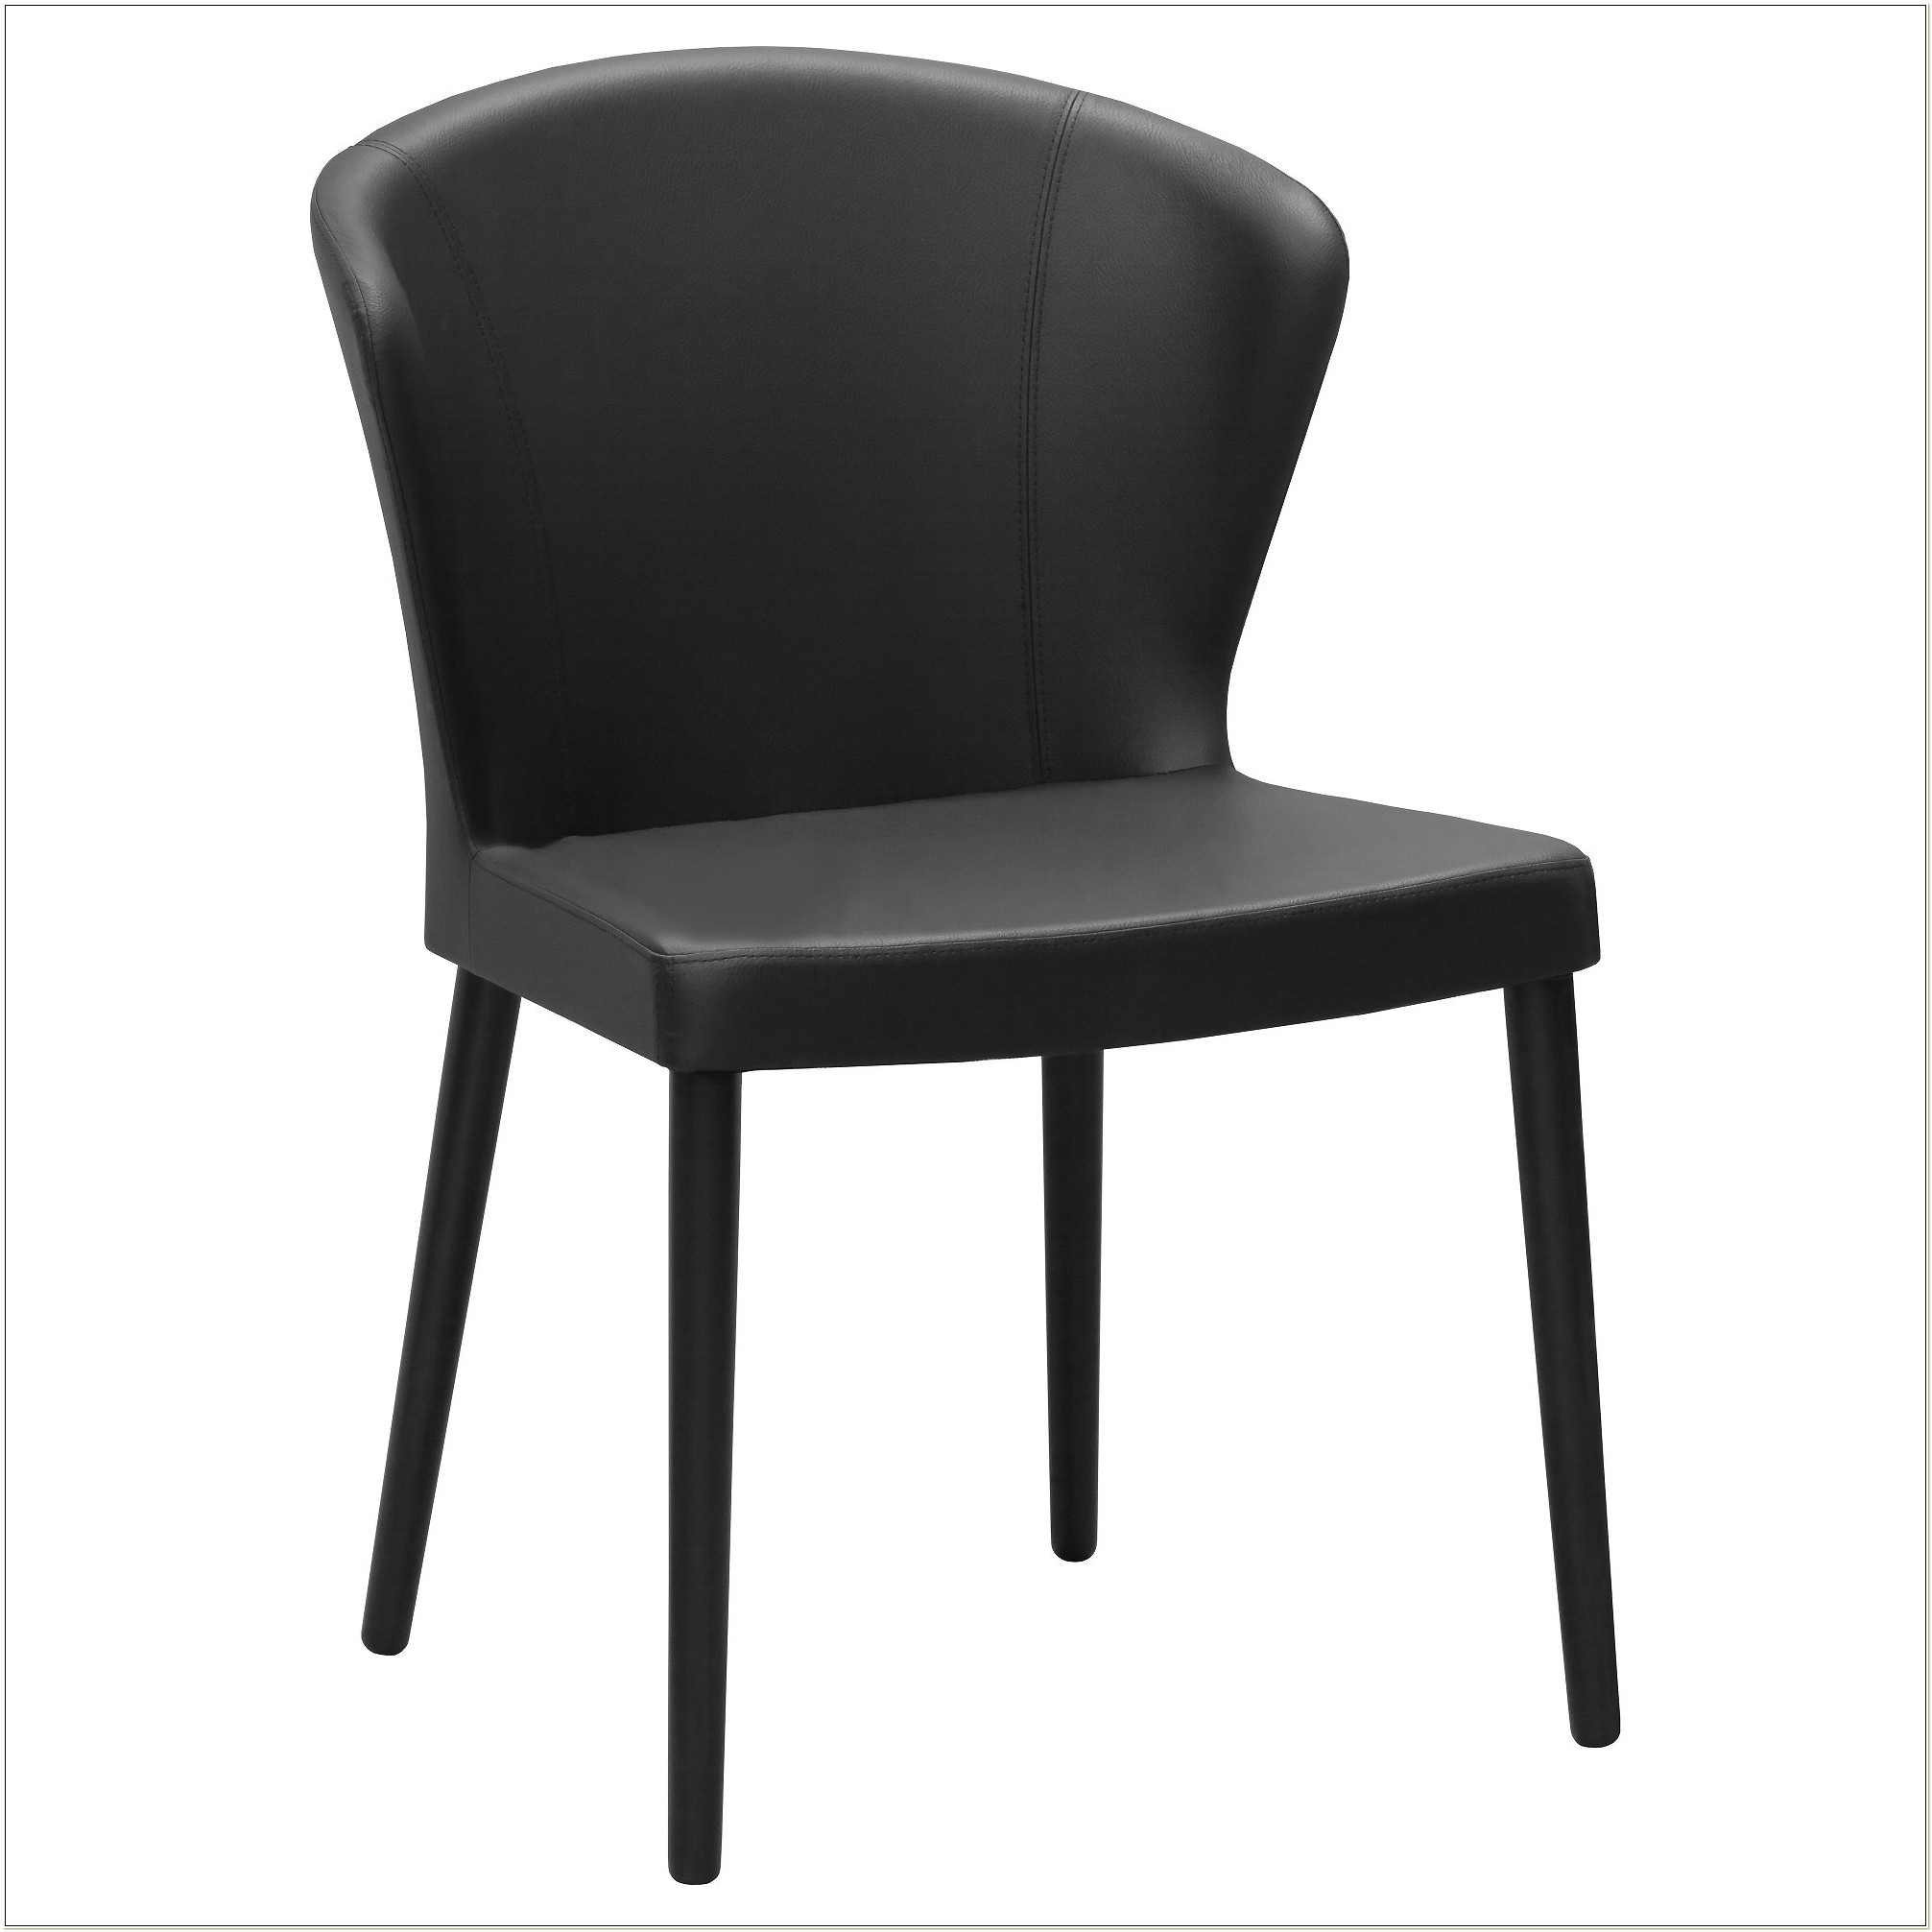 Ikea Black Leather Dining Chair